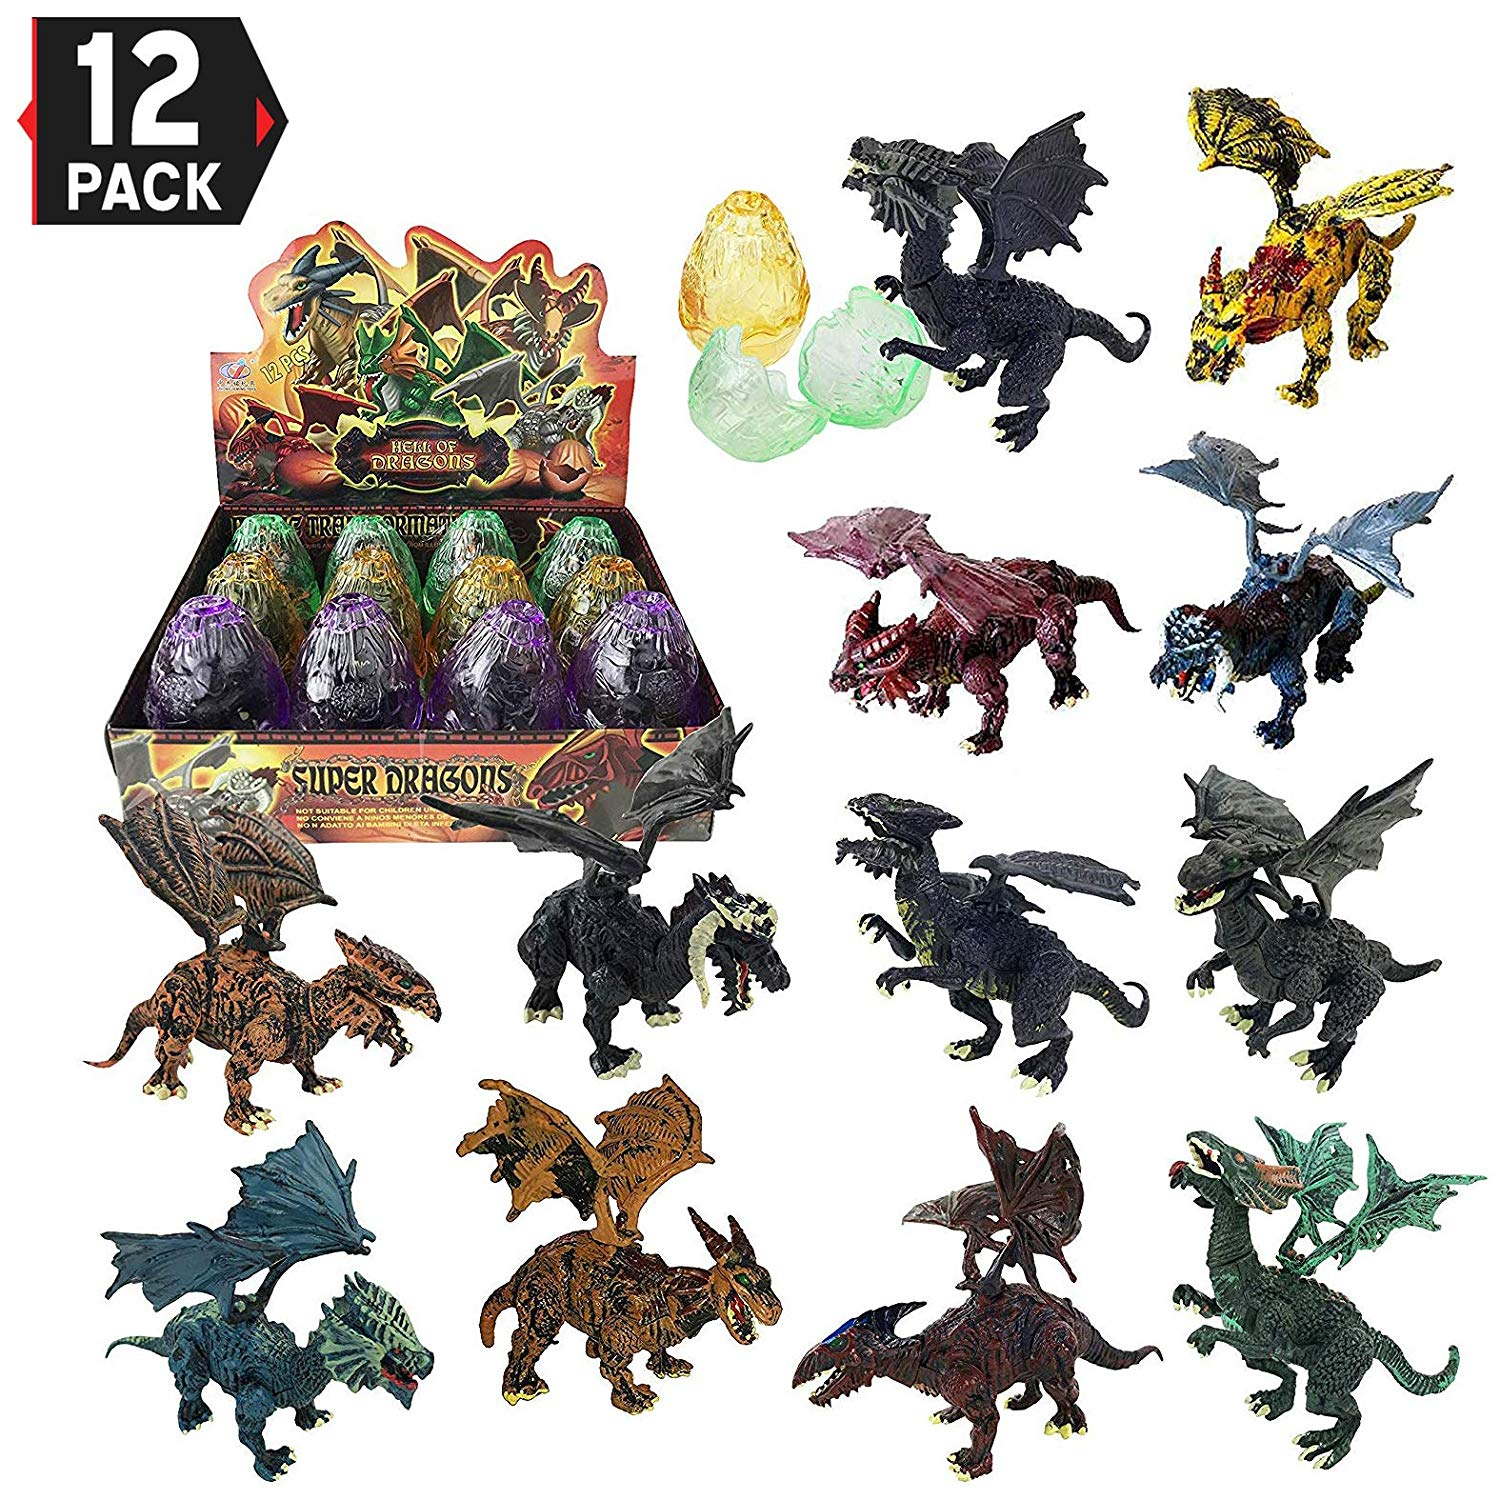 10 Of The Best Dragon Toys For Kids Reviews In 2021 17